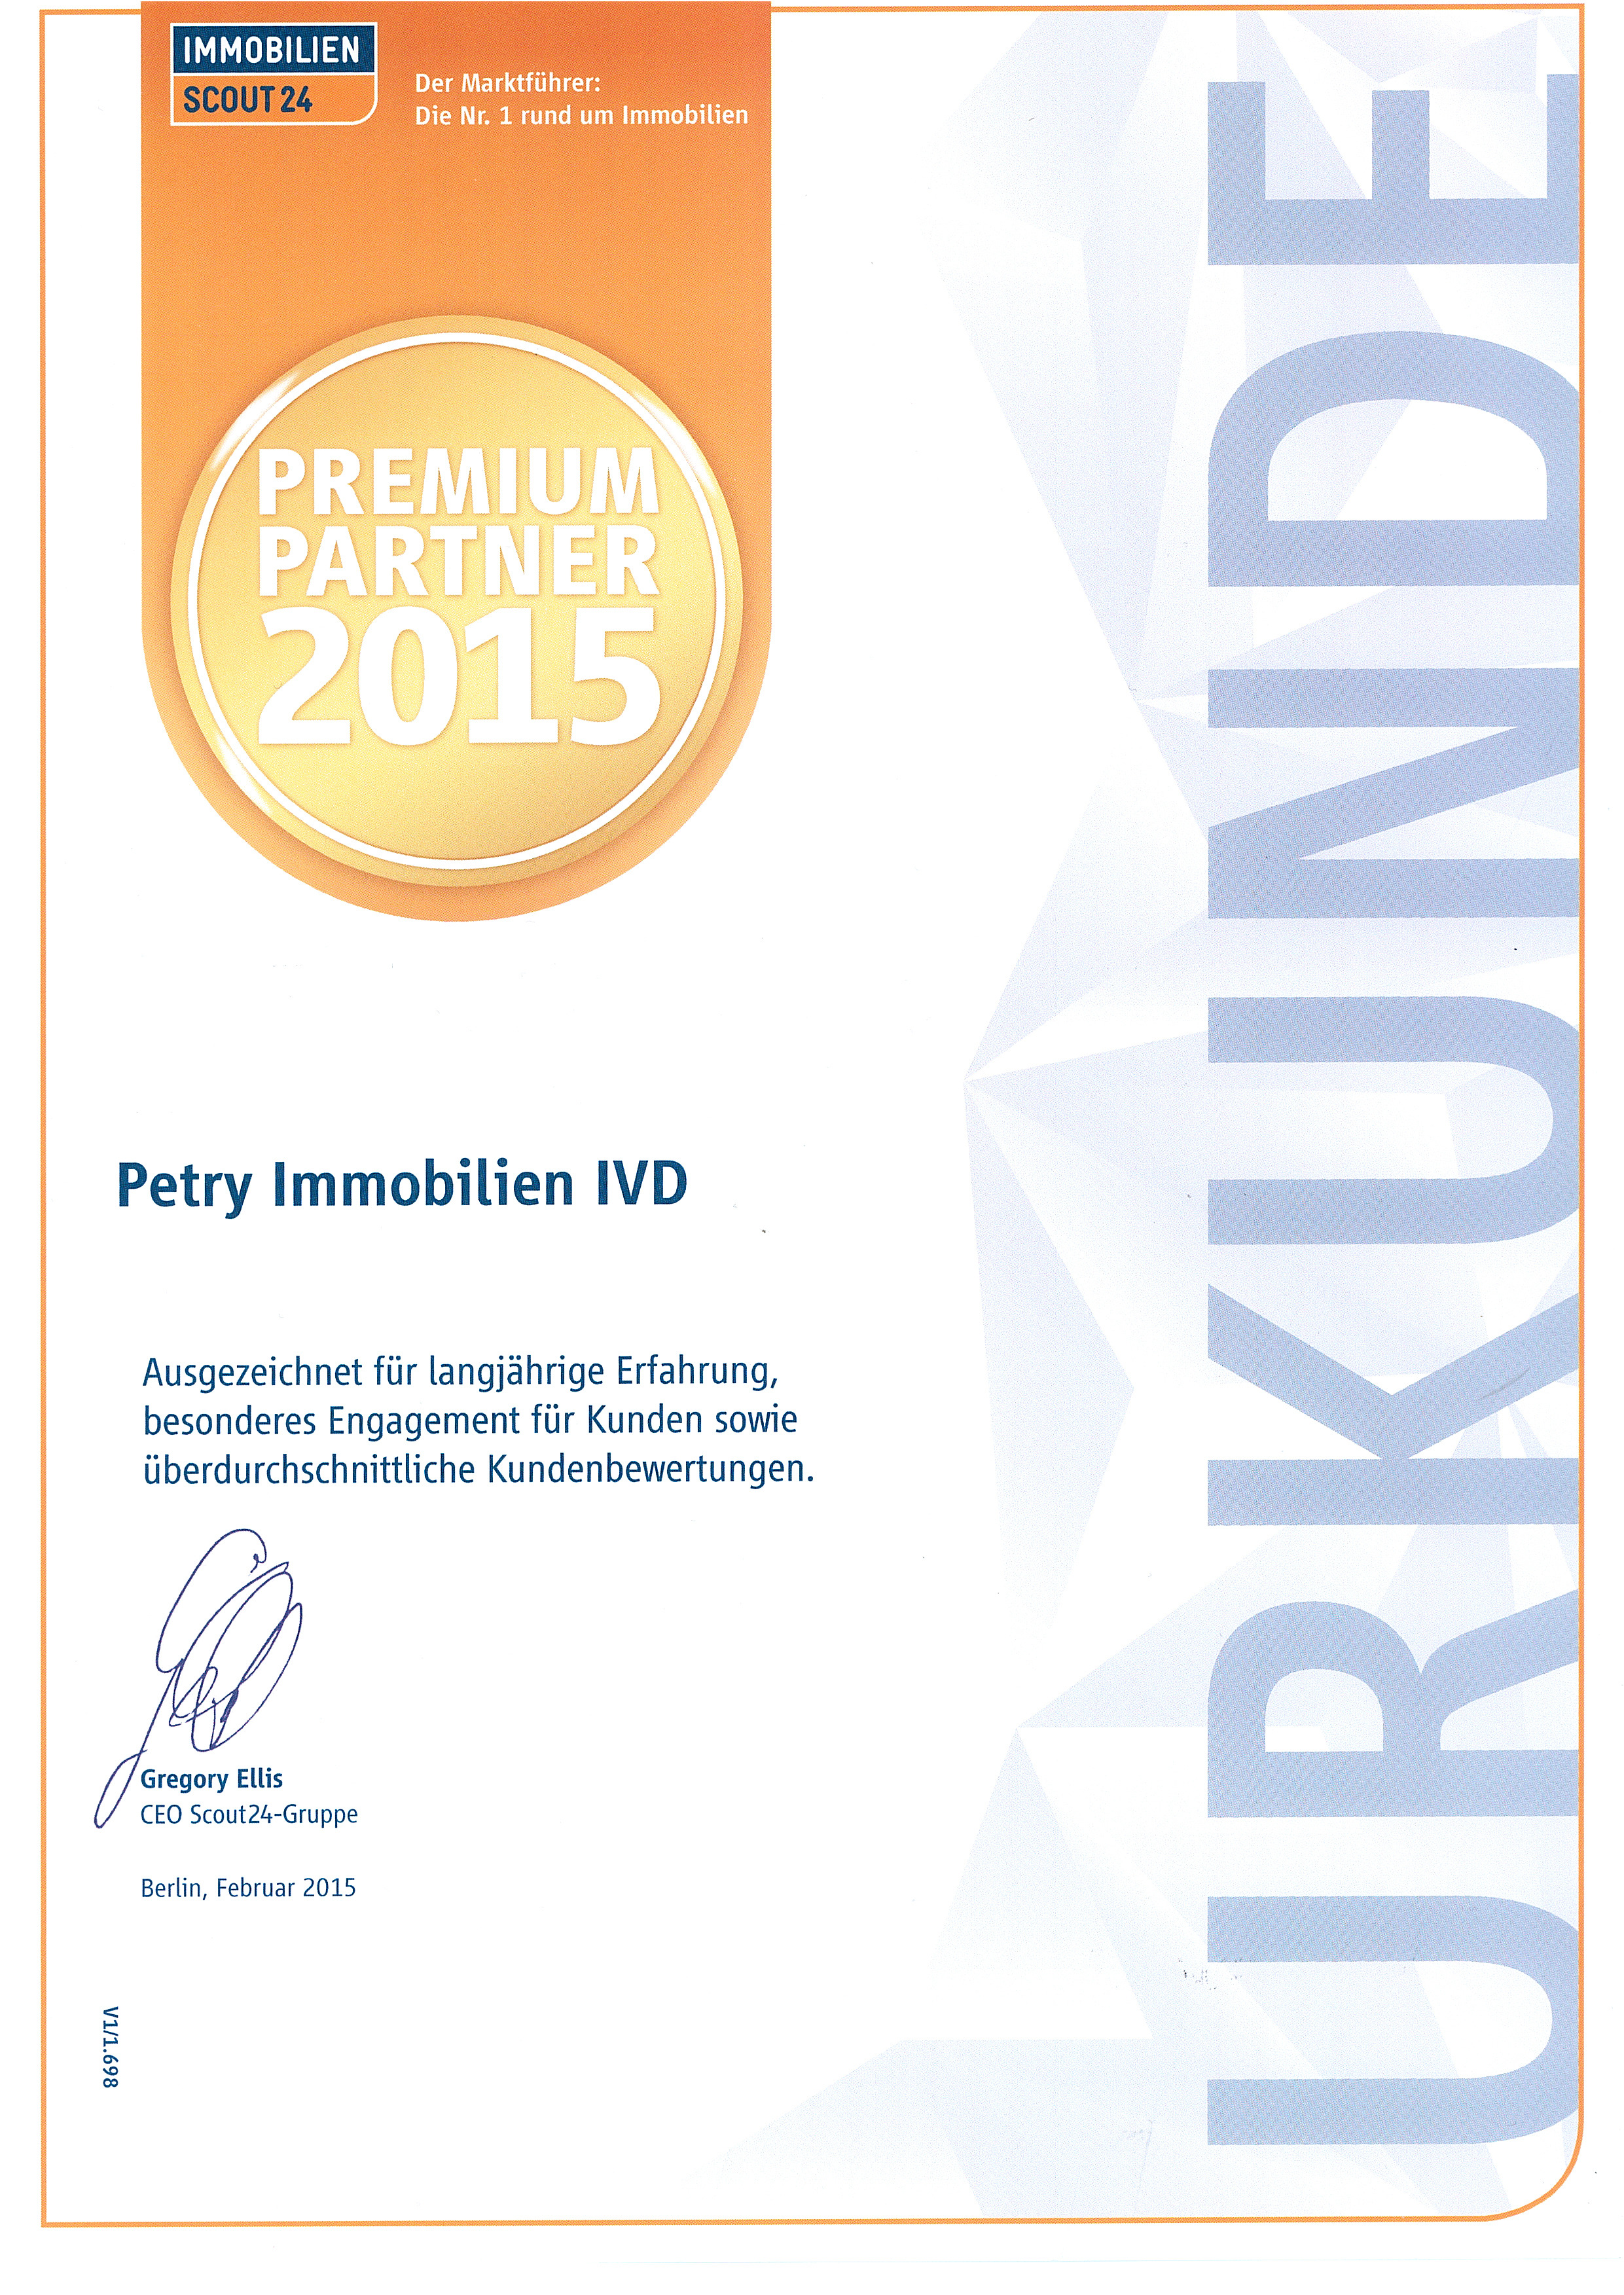 PETRY Immobilien ist Immobilienscout24 - Premiumpartner 2015